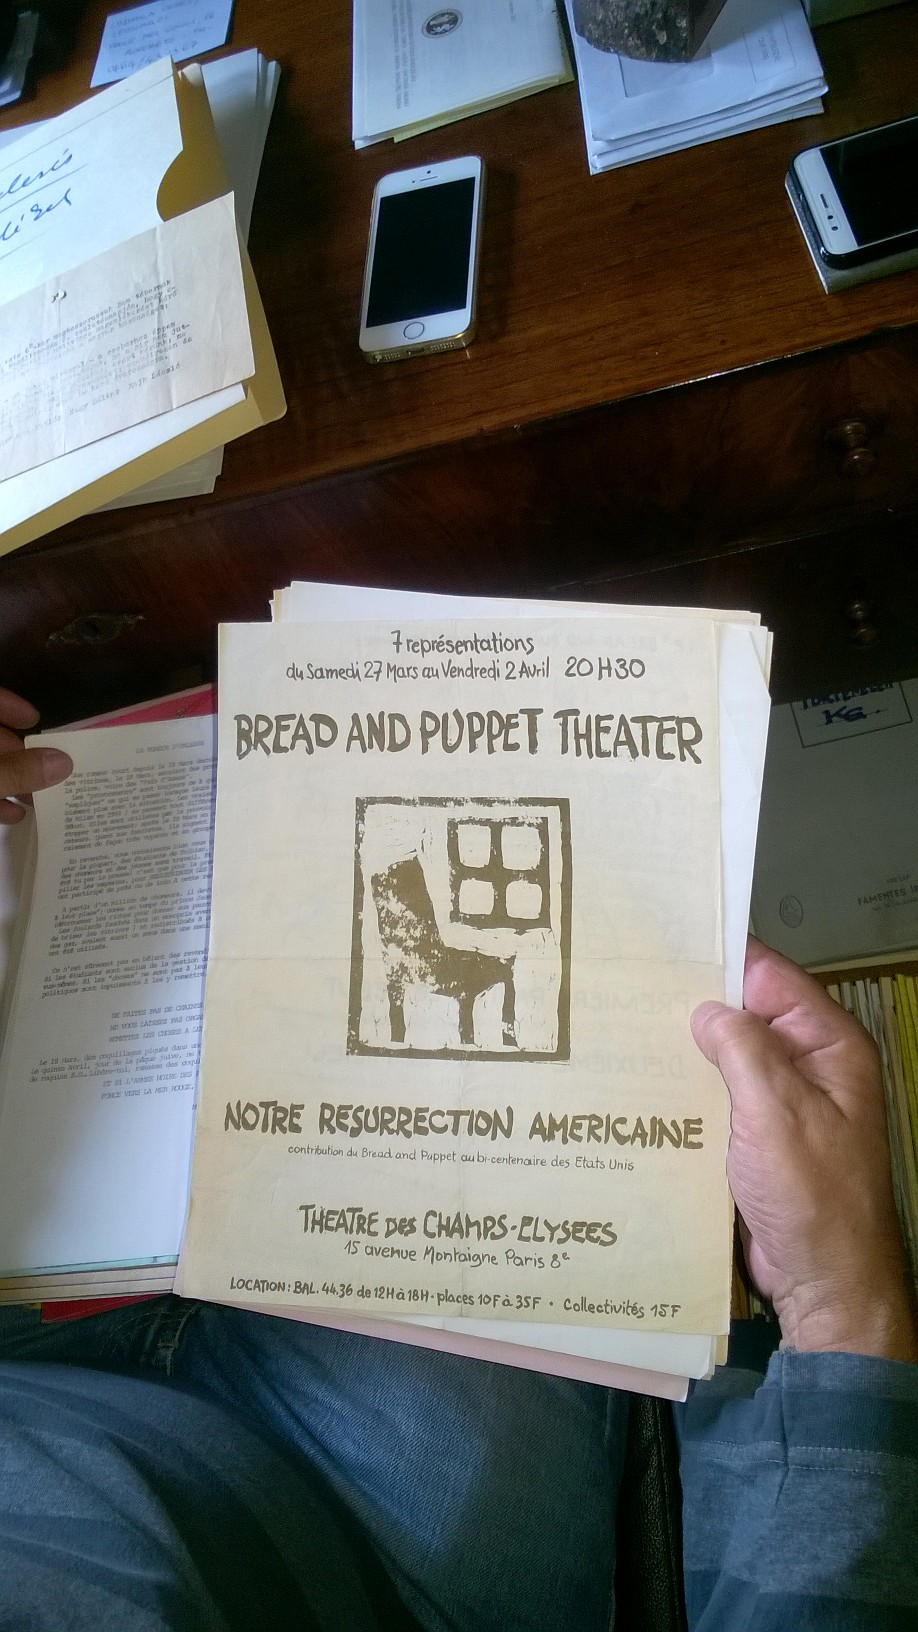 Bread and Puppet Theater' s leaflet